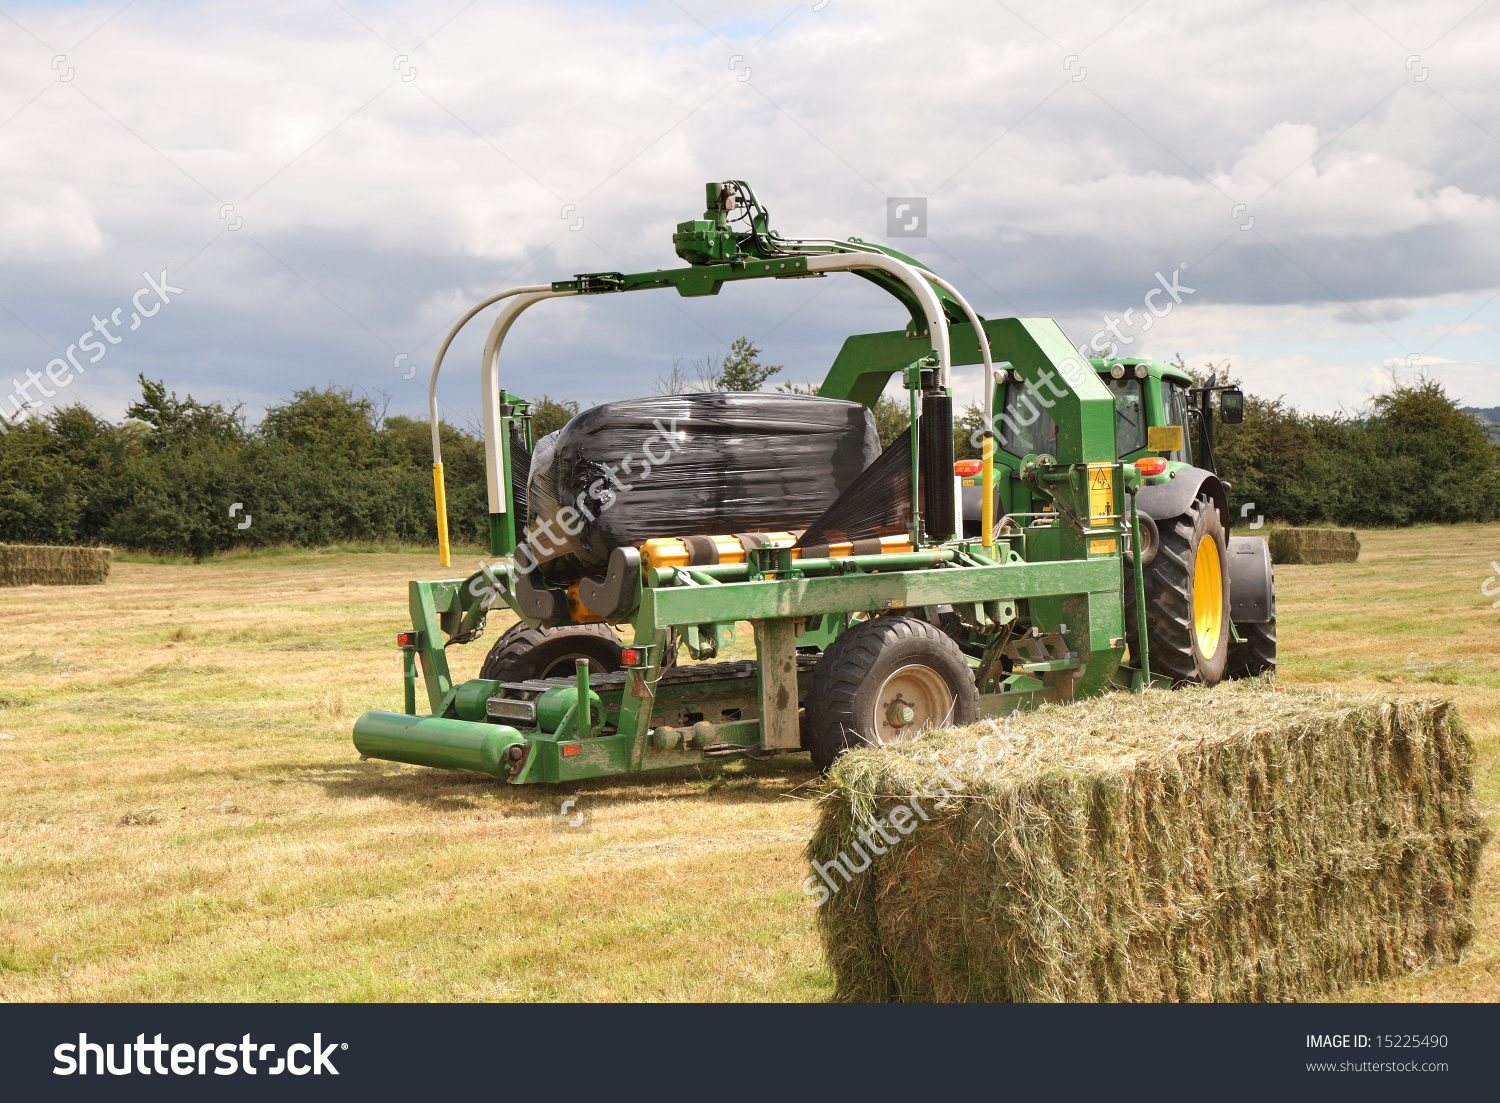 Tractor And Baling Machine Baling Hay In A Rural English Field.